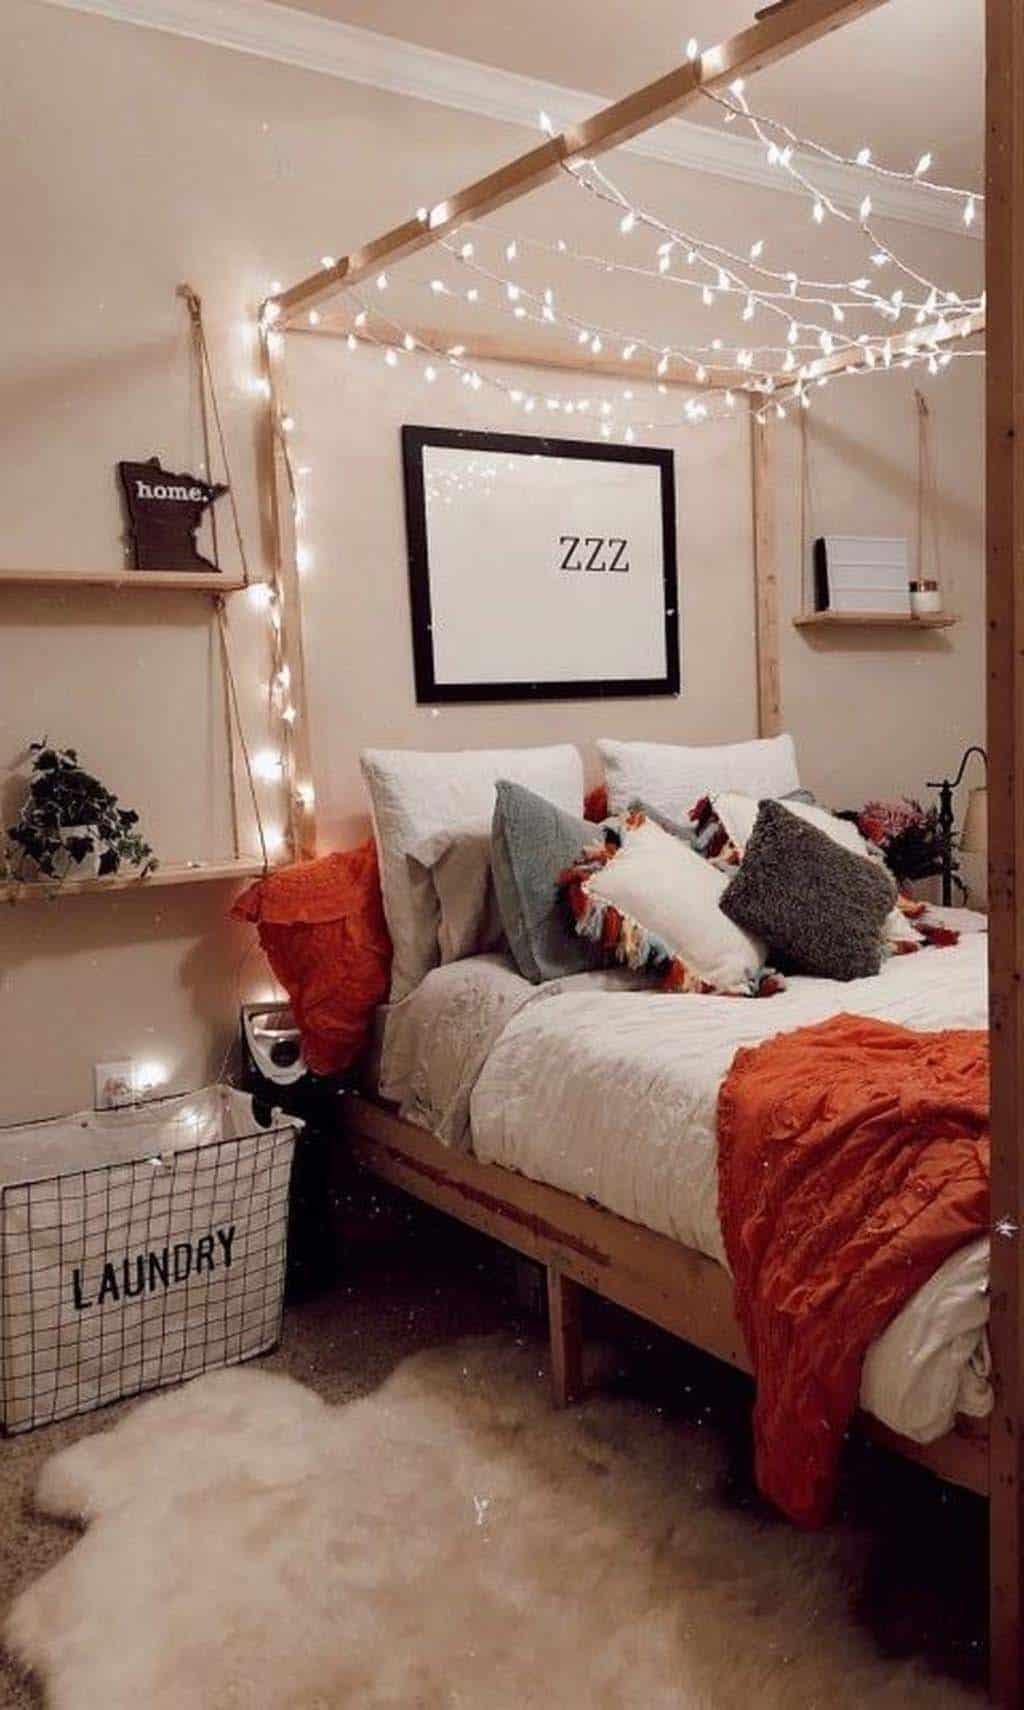 Bedroom-Decorating-Ideas-For-Autumn-12-1-Kindesign